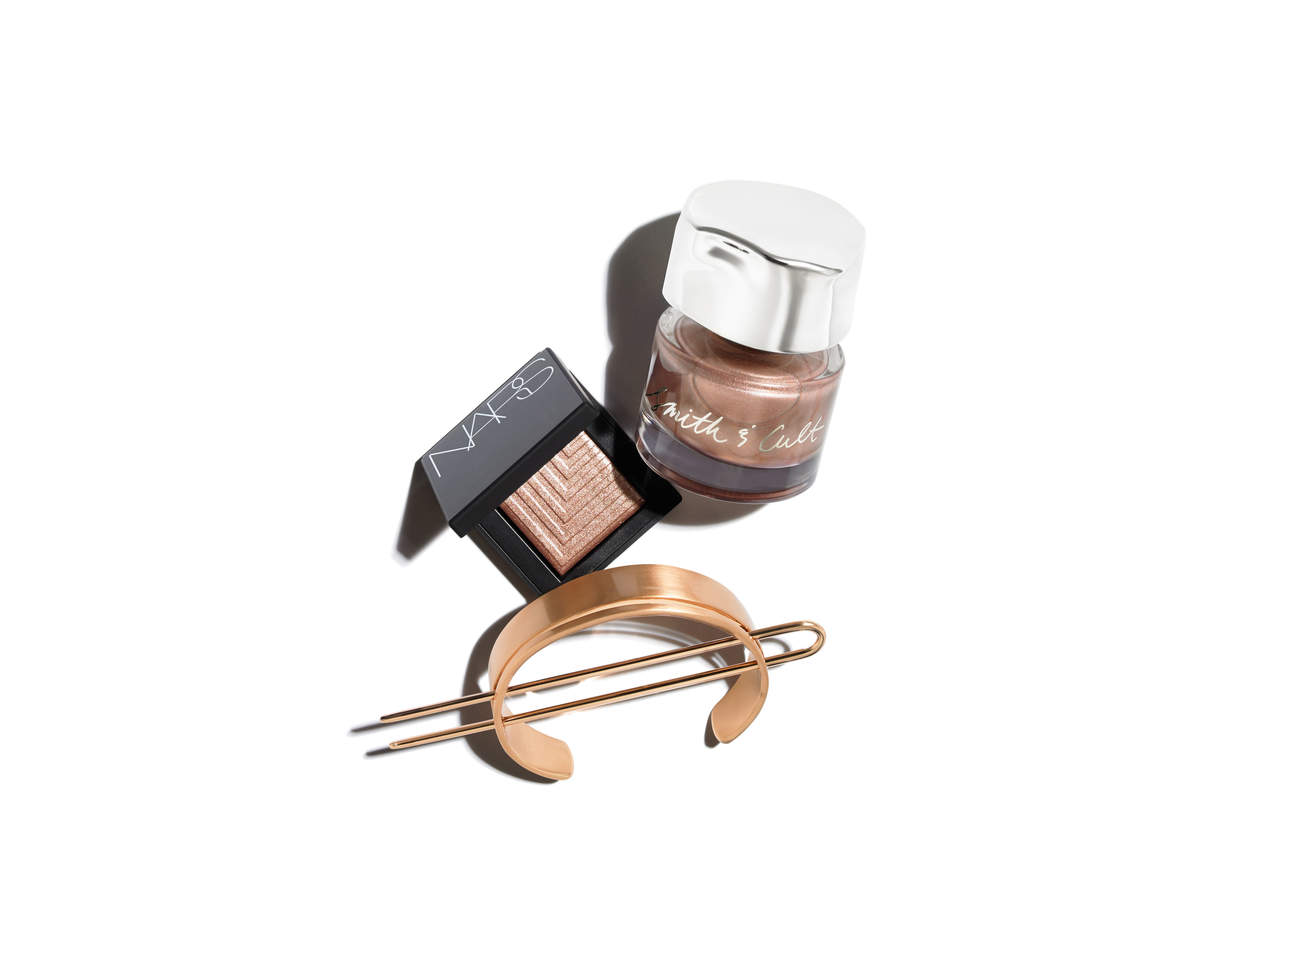 rose-gold-products